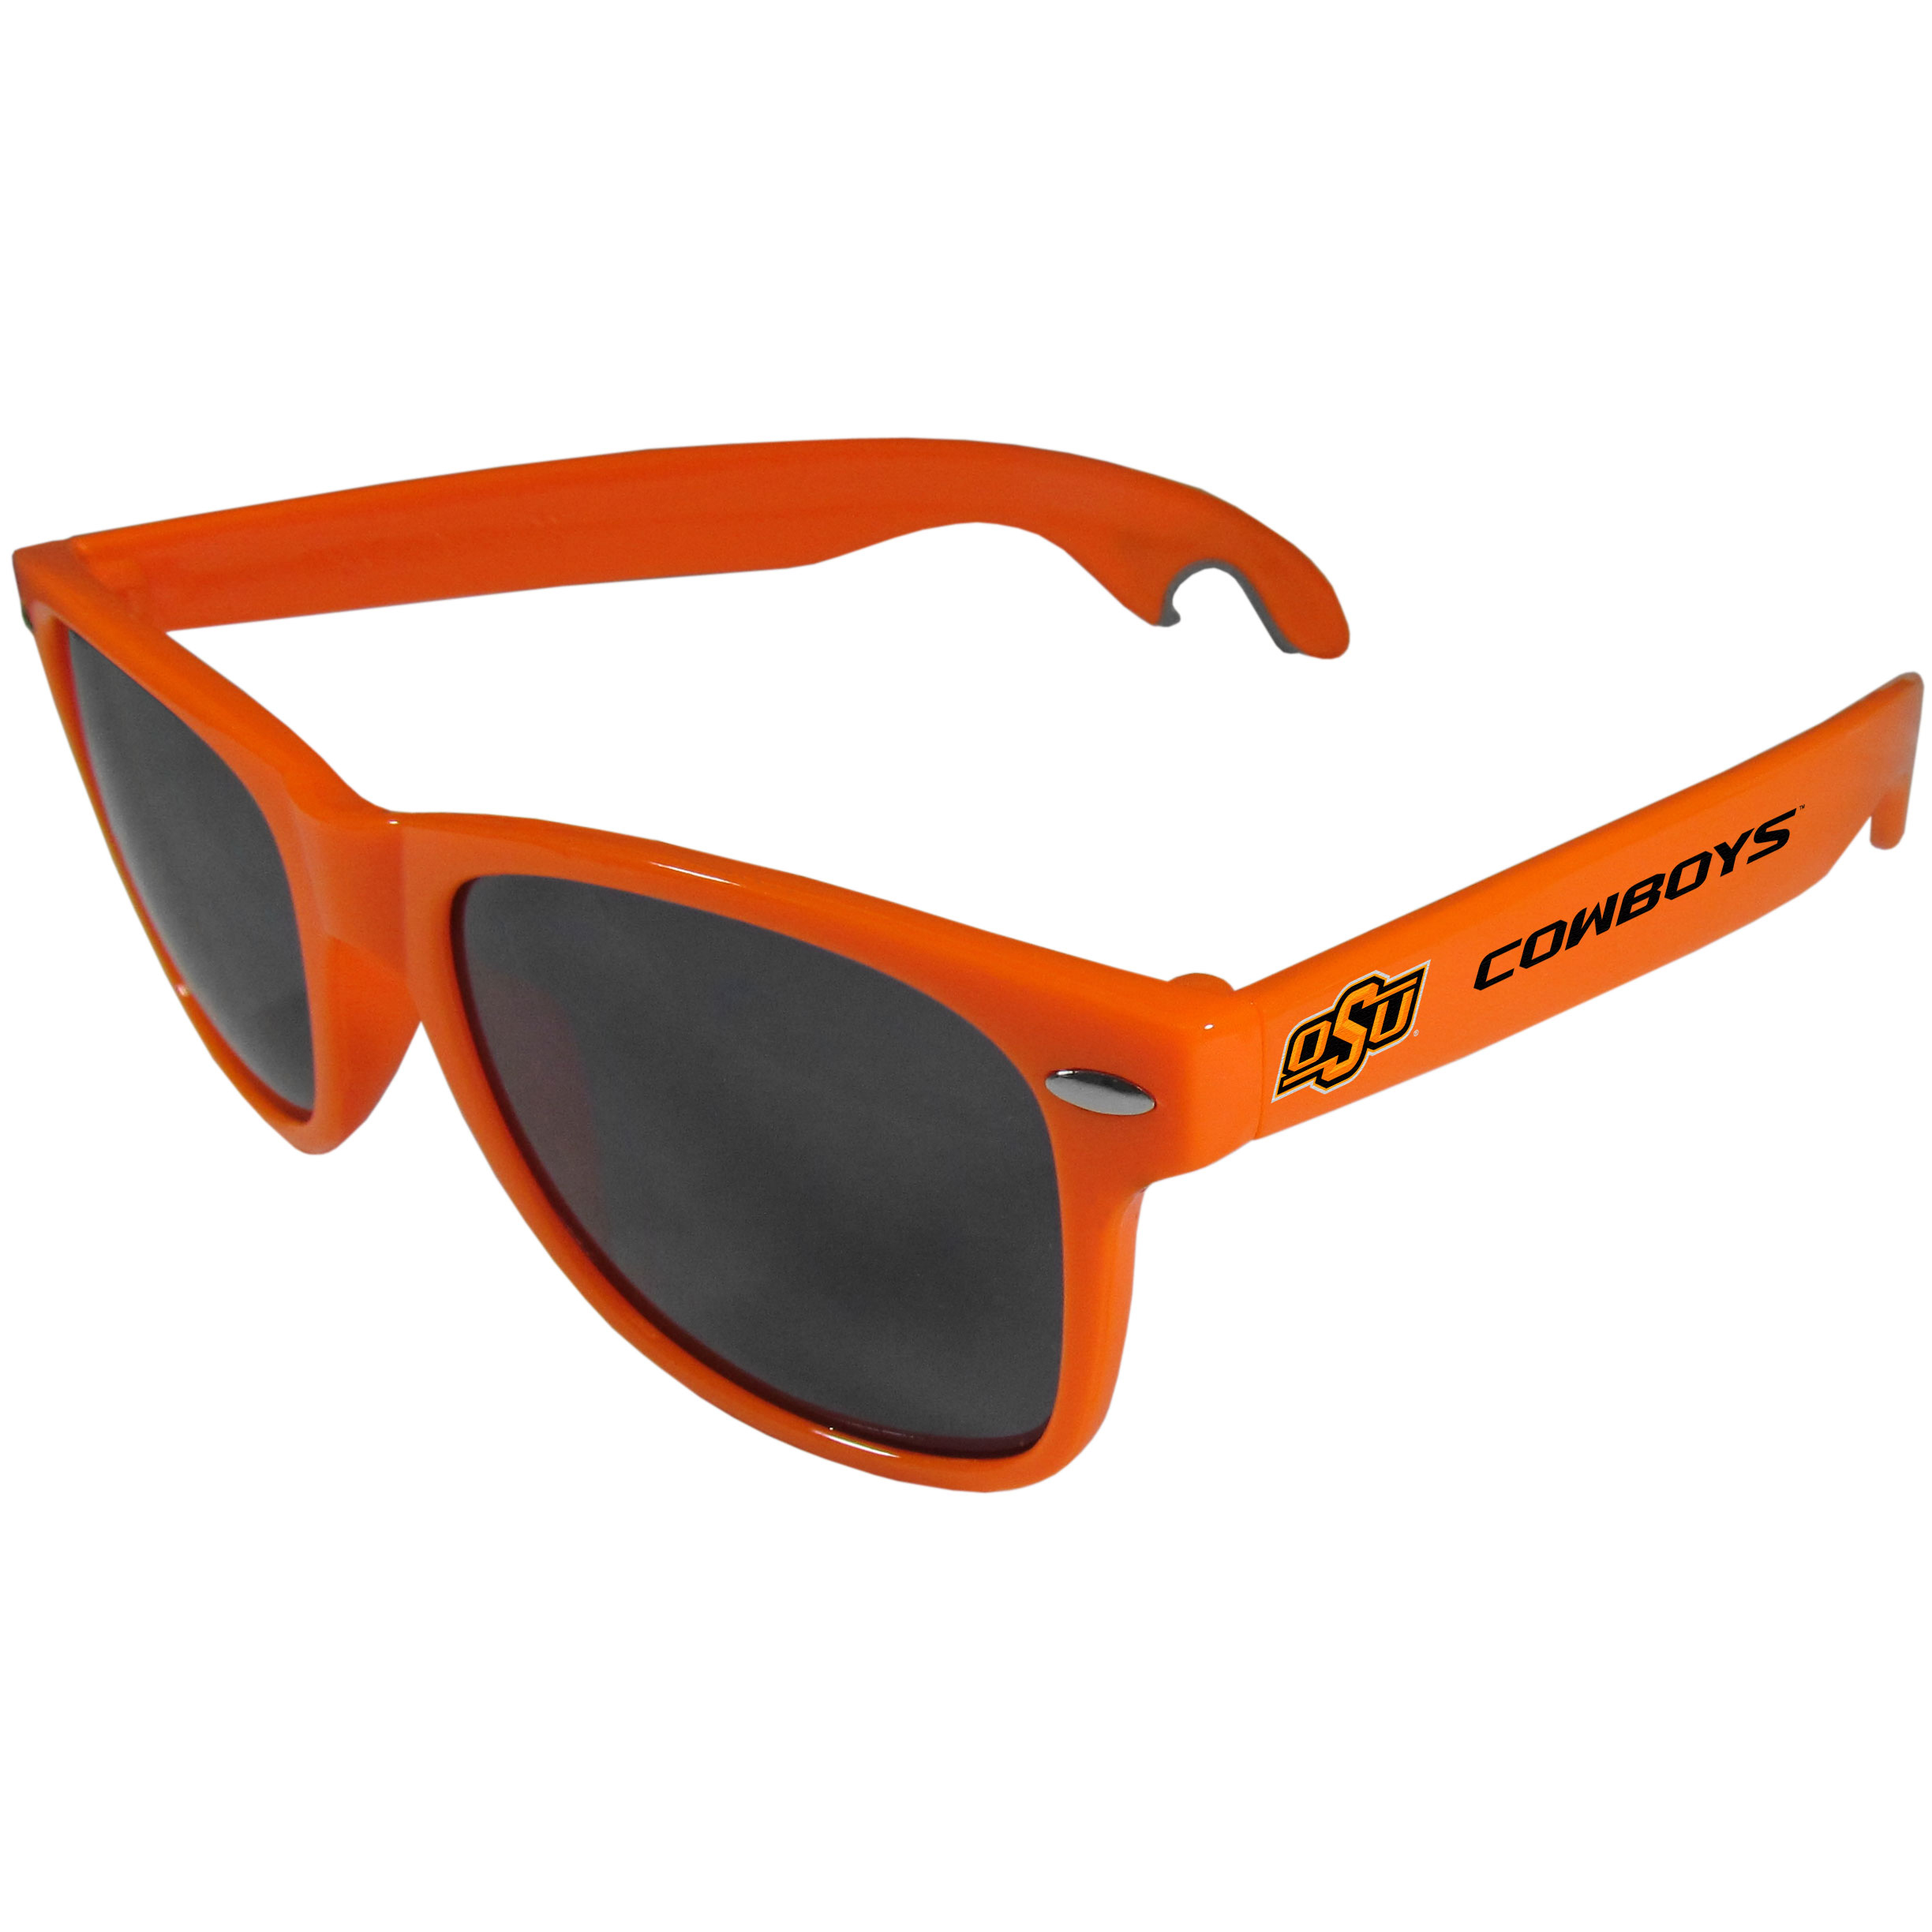 Oklahoma St. Cowboys Beachfarer Bottle Opener Sunglasses, Orange - Seriously, these sunglasses open bottles! Keep the party going with these amazing Oklahoma St. Cowboys bottle opener sunglasses. The stylish retro frames feature team designs on the arms and functional bottle openers on the end of the arms. Whether you are at the beach or having a backyard BBQ on game day, these shades will keep your eyes protected with 100% UVA/UVB protection and keep you hydrated with the handy bottle opener arms.